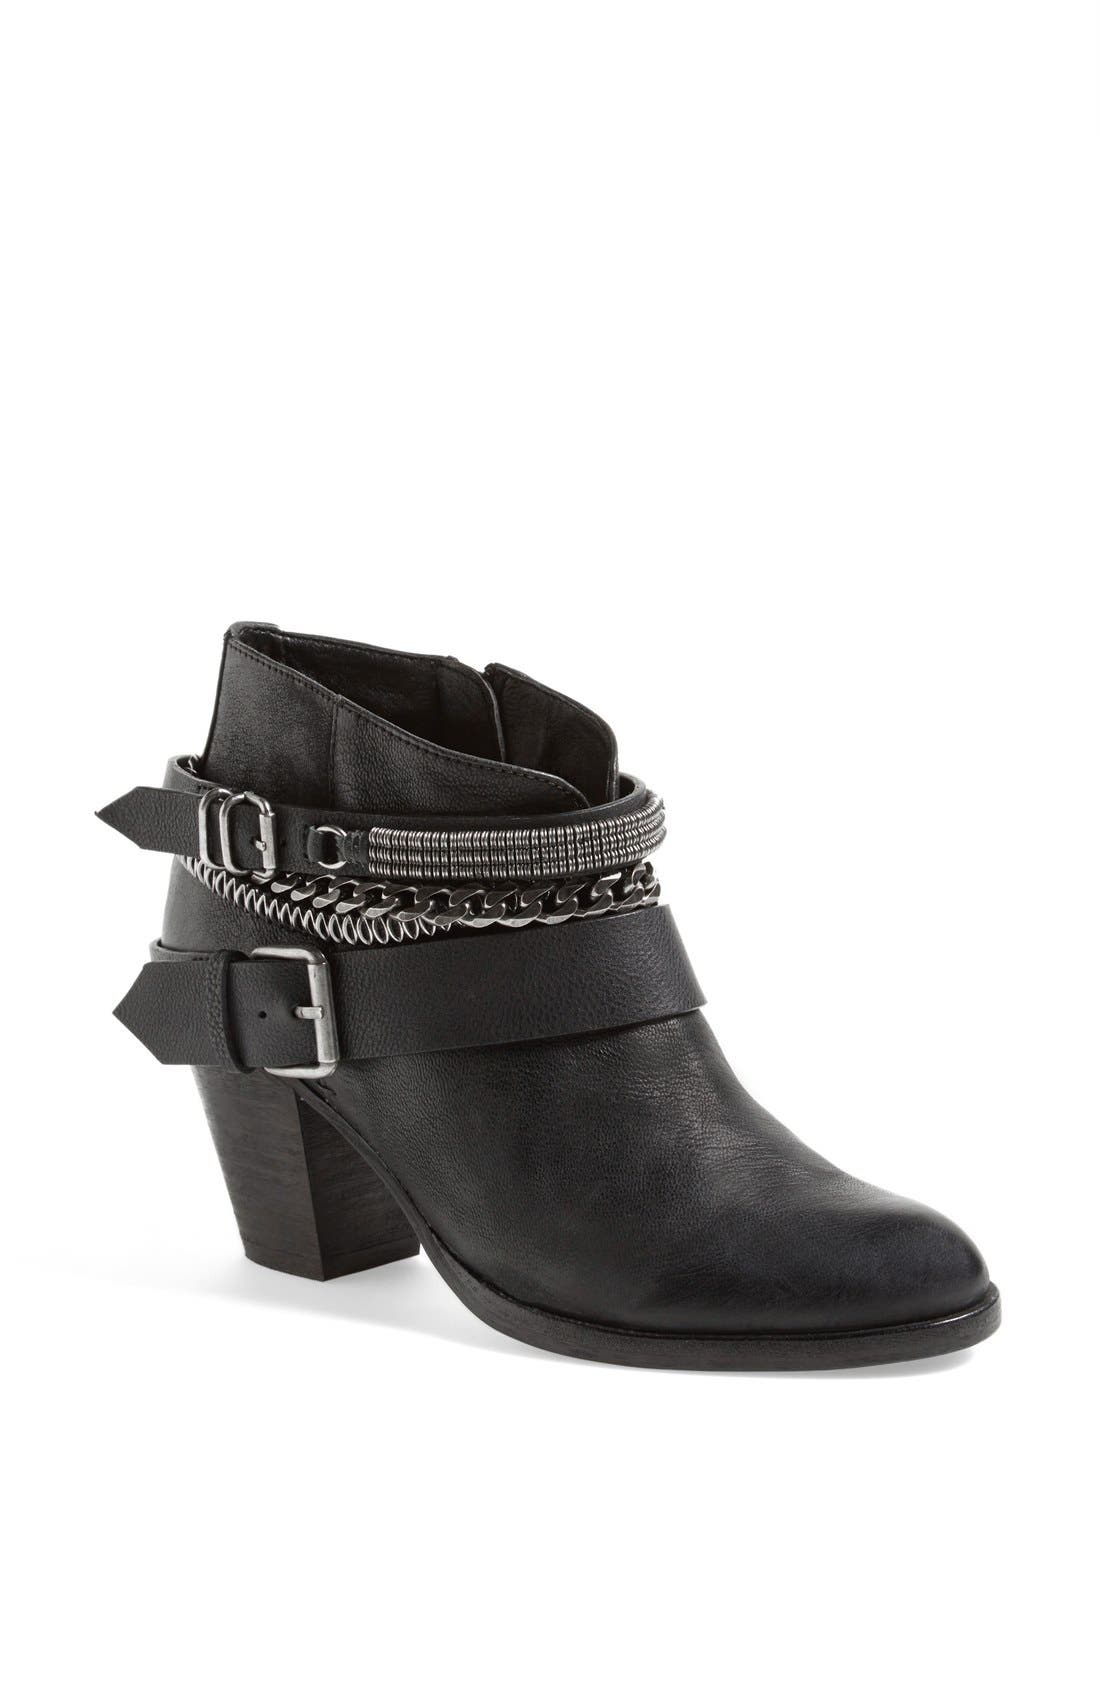 DOLCE VITA, 'Yazmina' Leather Bootie, Main thumbnail 1, color, 019